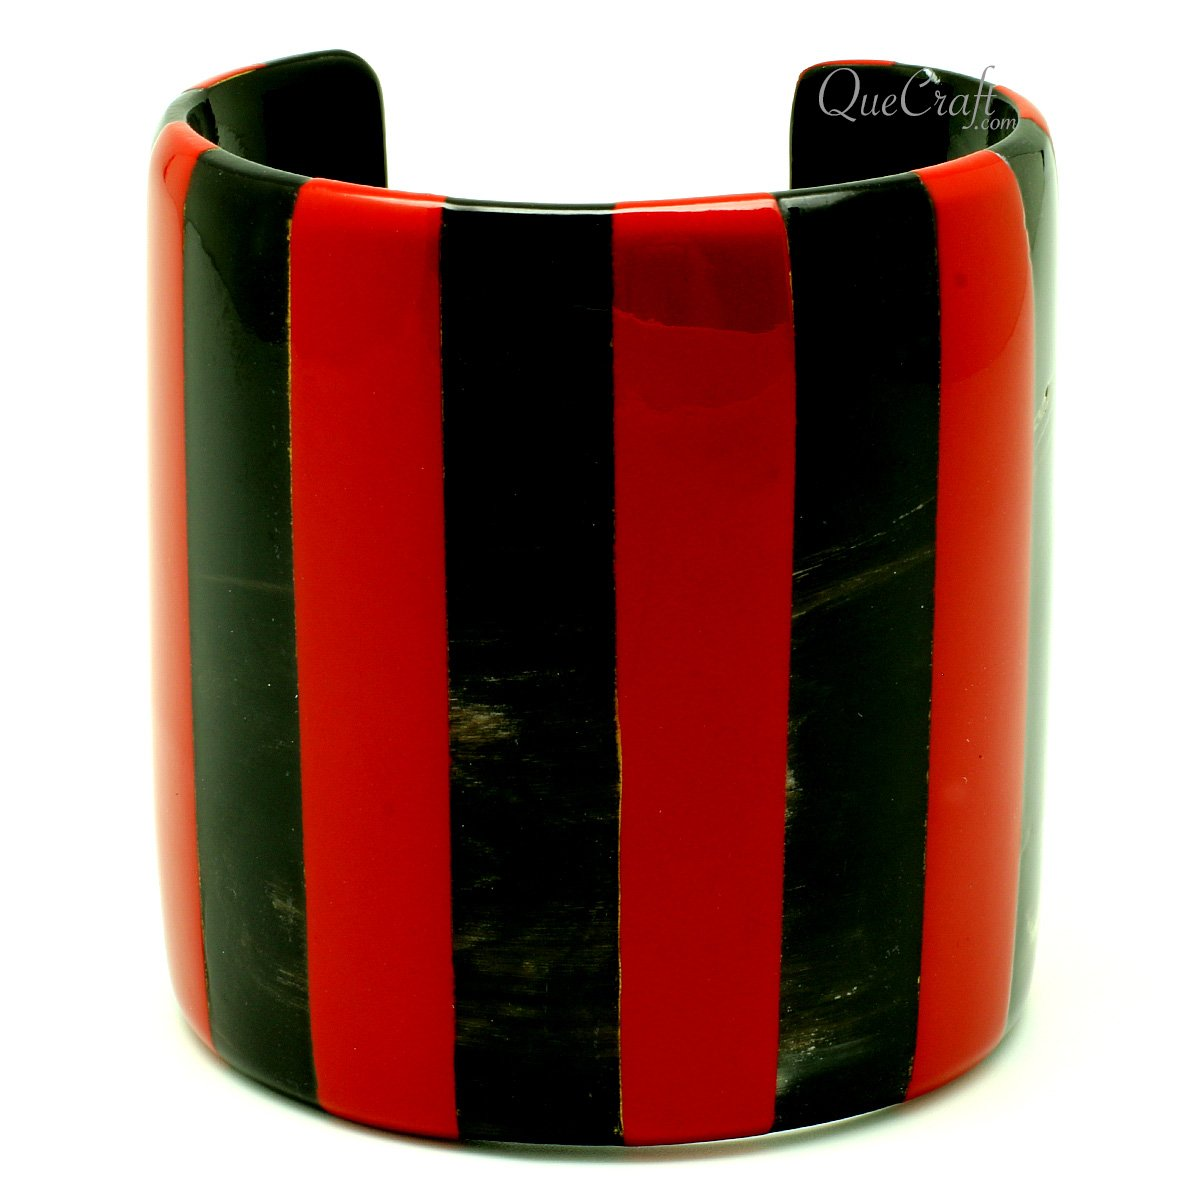 Horn & Lacquer Cuff Bracelet #13209 - HORN.JEWELRY by QueCraft